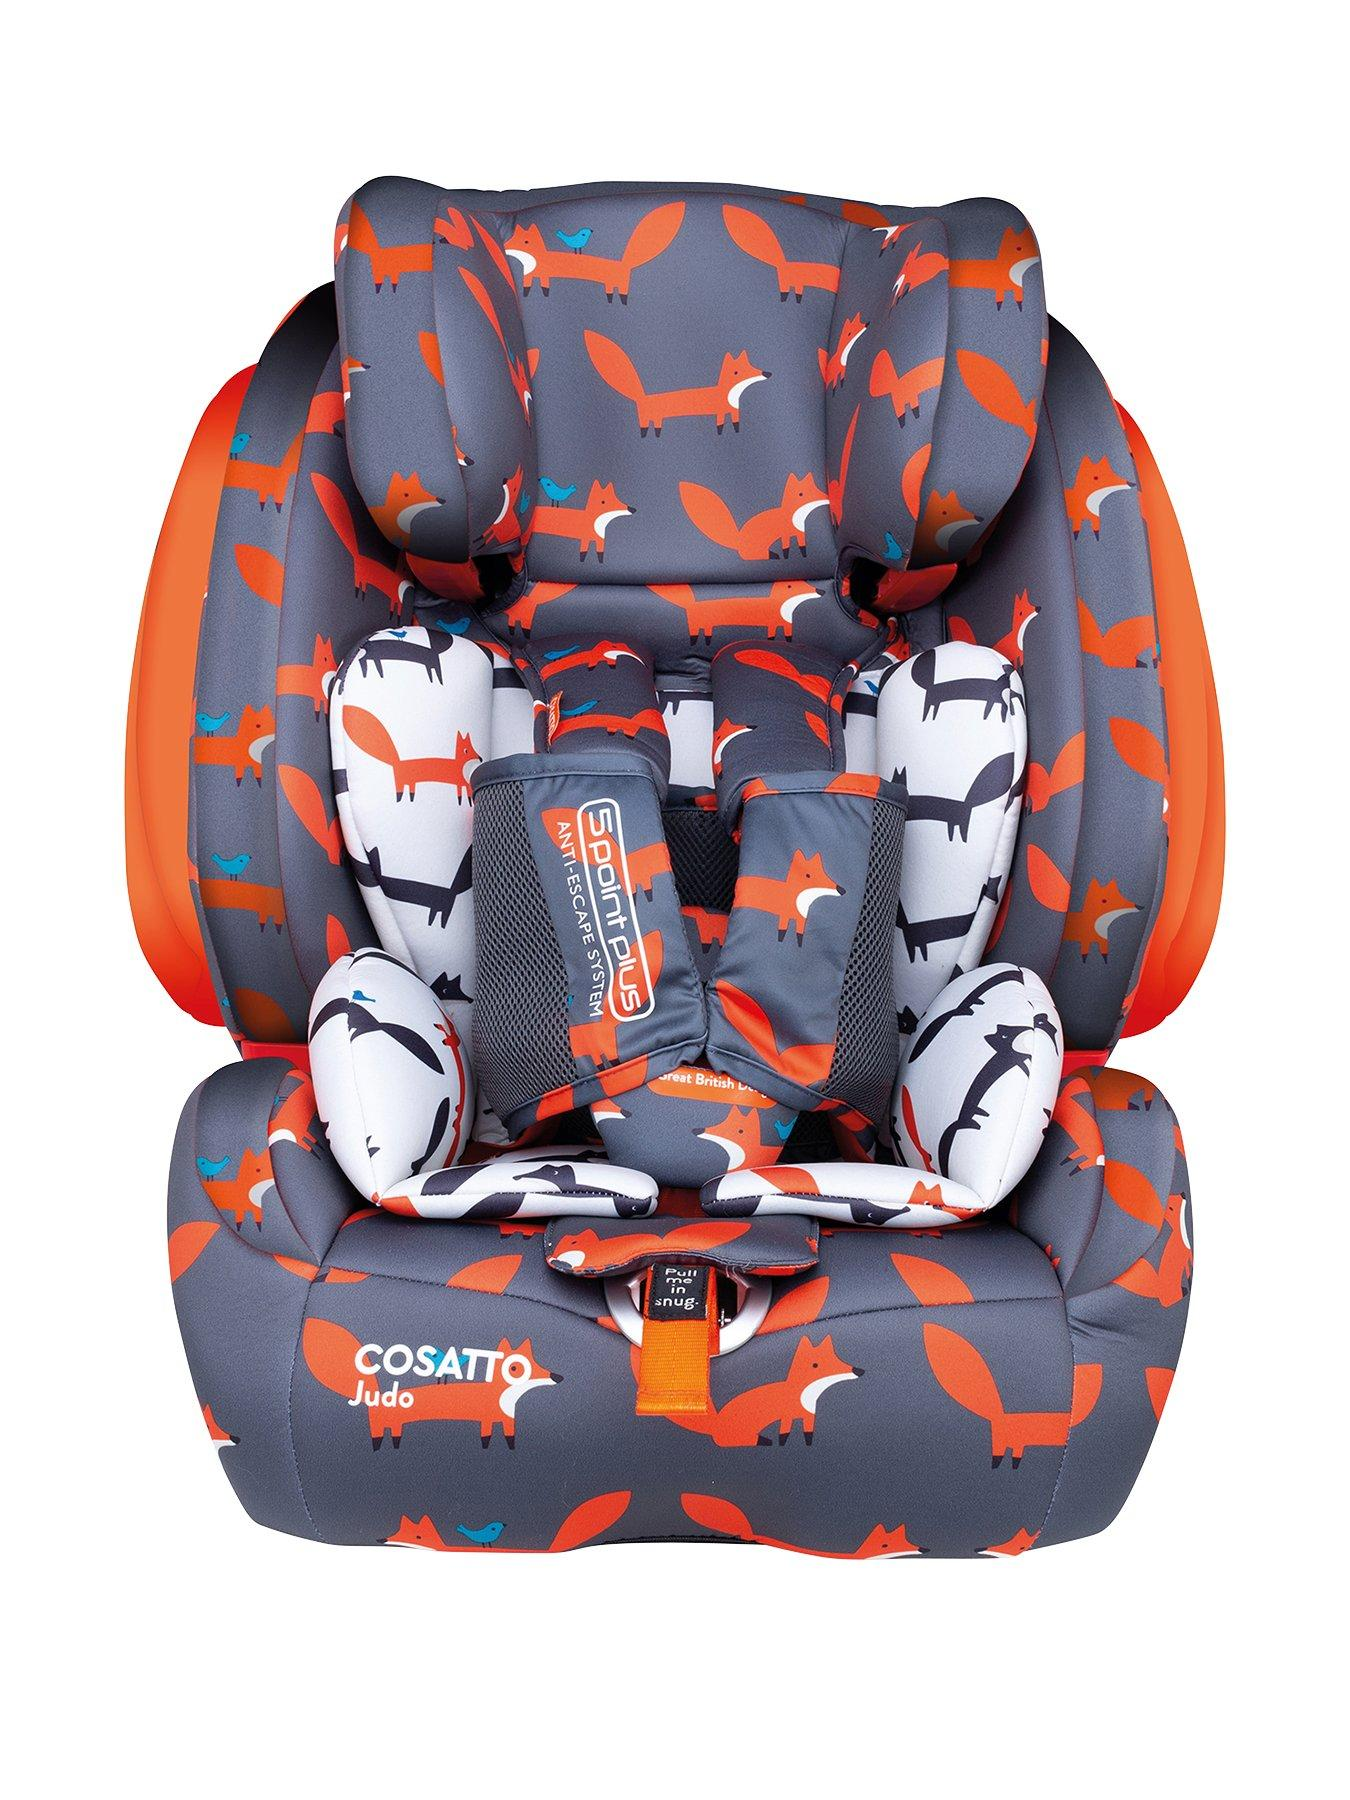 Nania Childs Car Seat Forward Facing 9m to 4yrs Recliner In ORANGE BRAND NEW